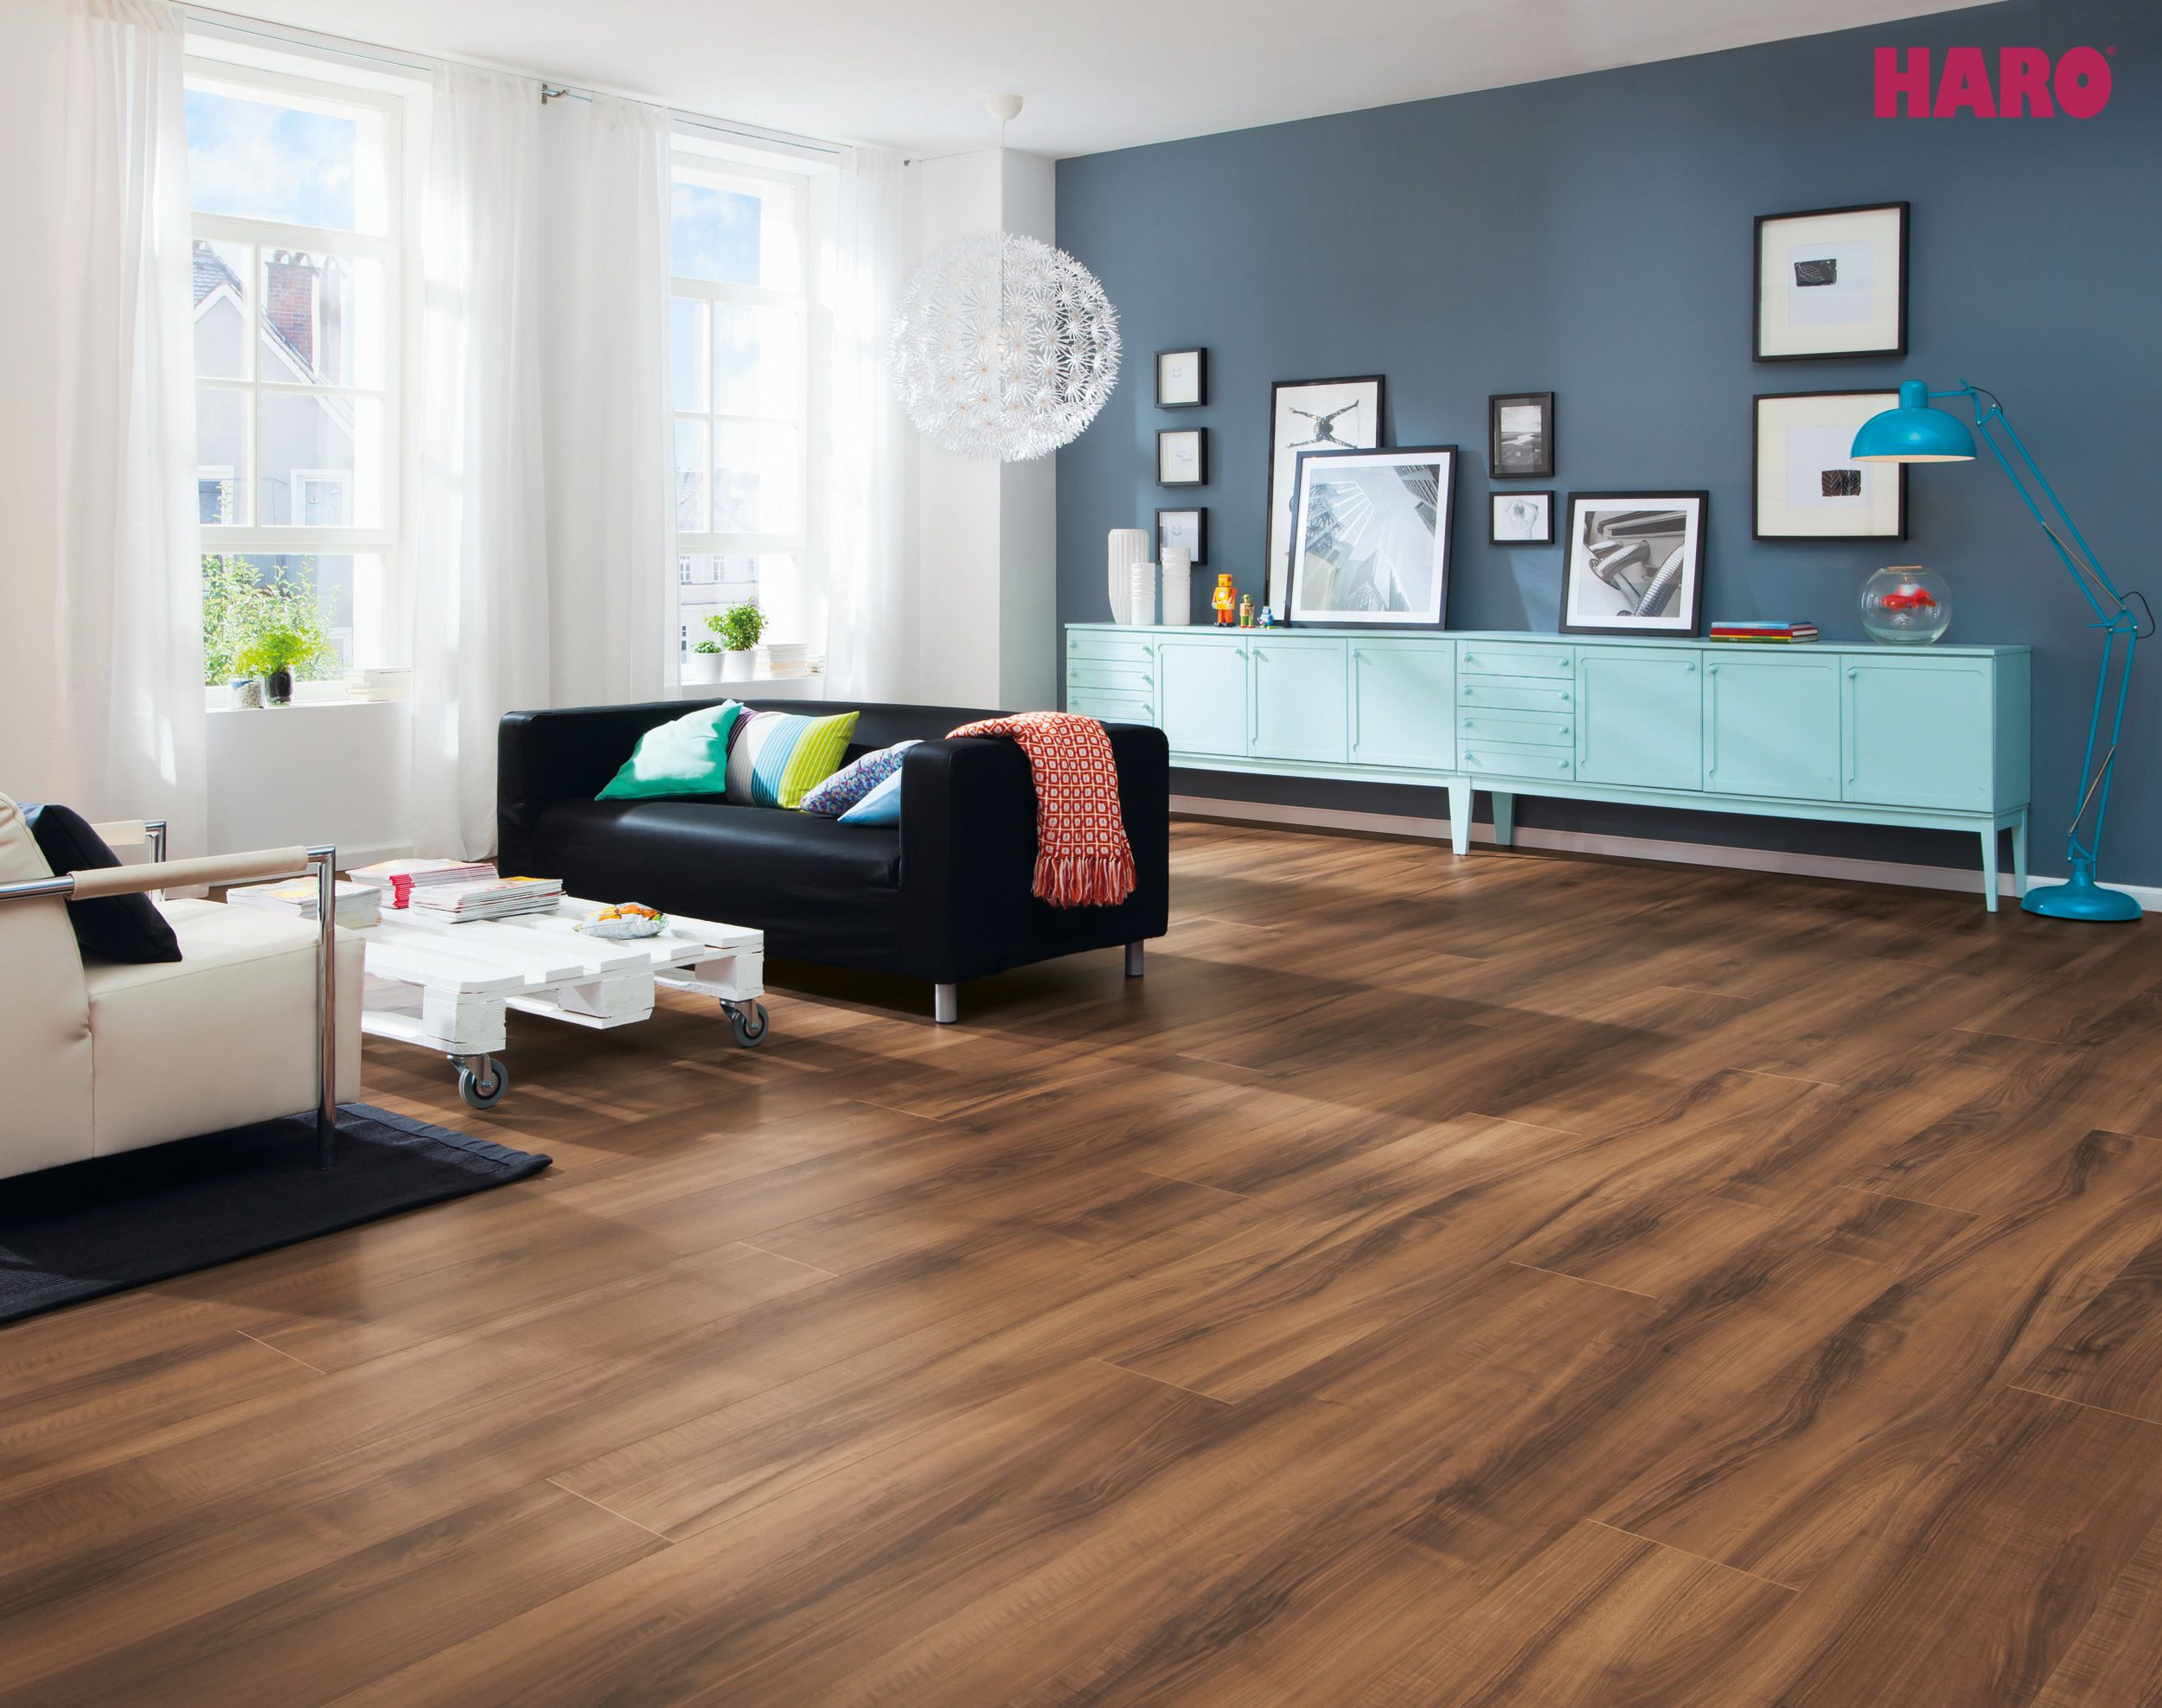 hardwood laminate flooring prices of haro italian walnut tritty 100 gran via 4v 526 714 new house with haro italian walnut tritty 100 gran via 4v 526 714